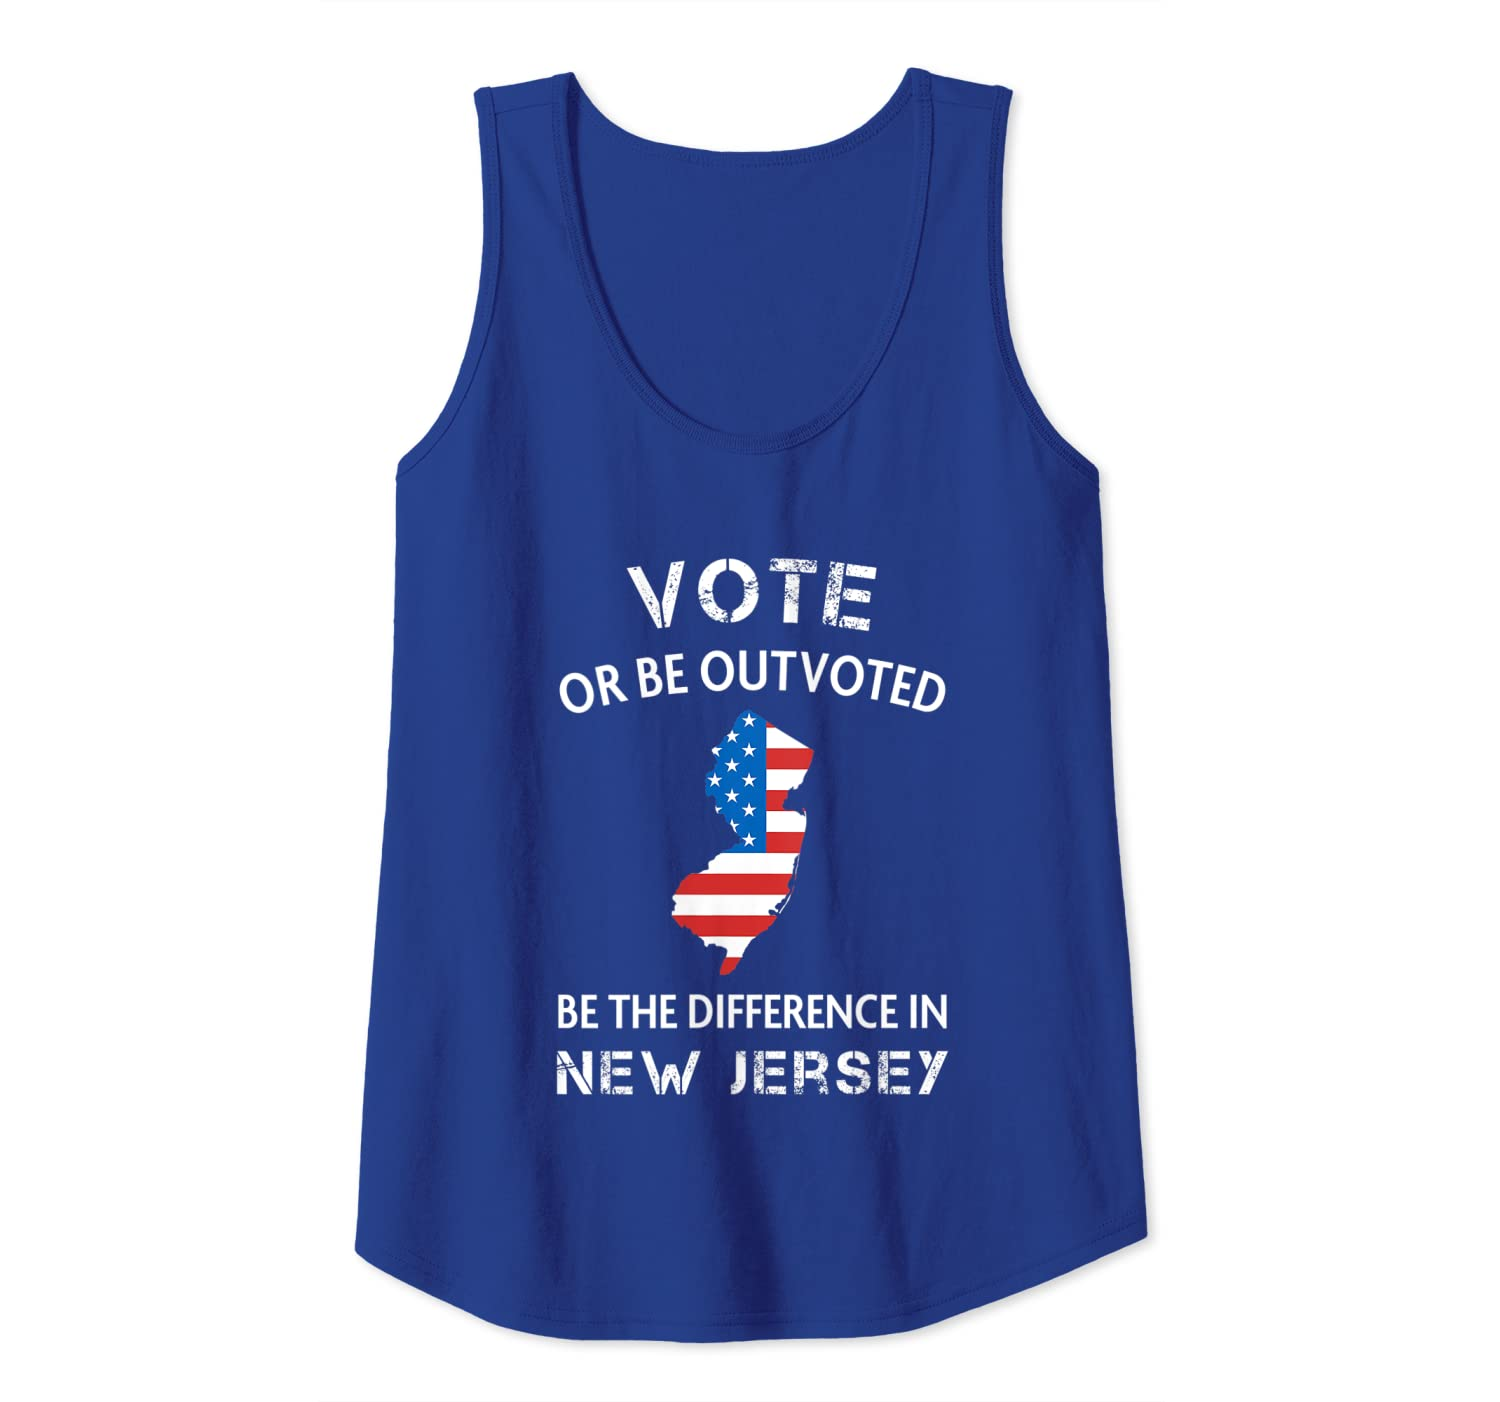 New Jersey Elections 2020.Amazon Com New Jersey Voter Quote Difference Election Vote